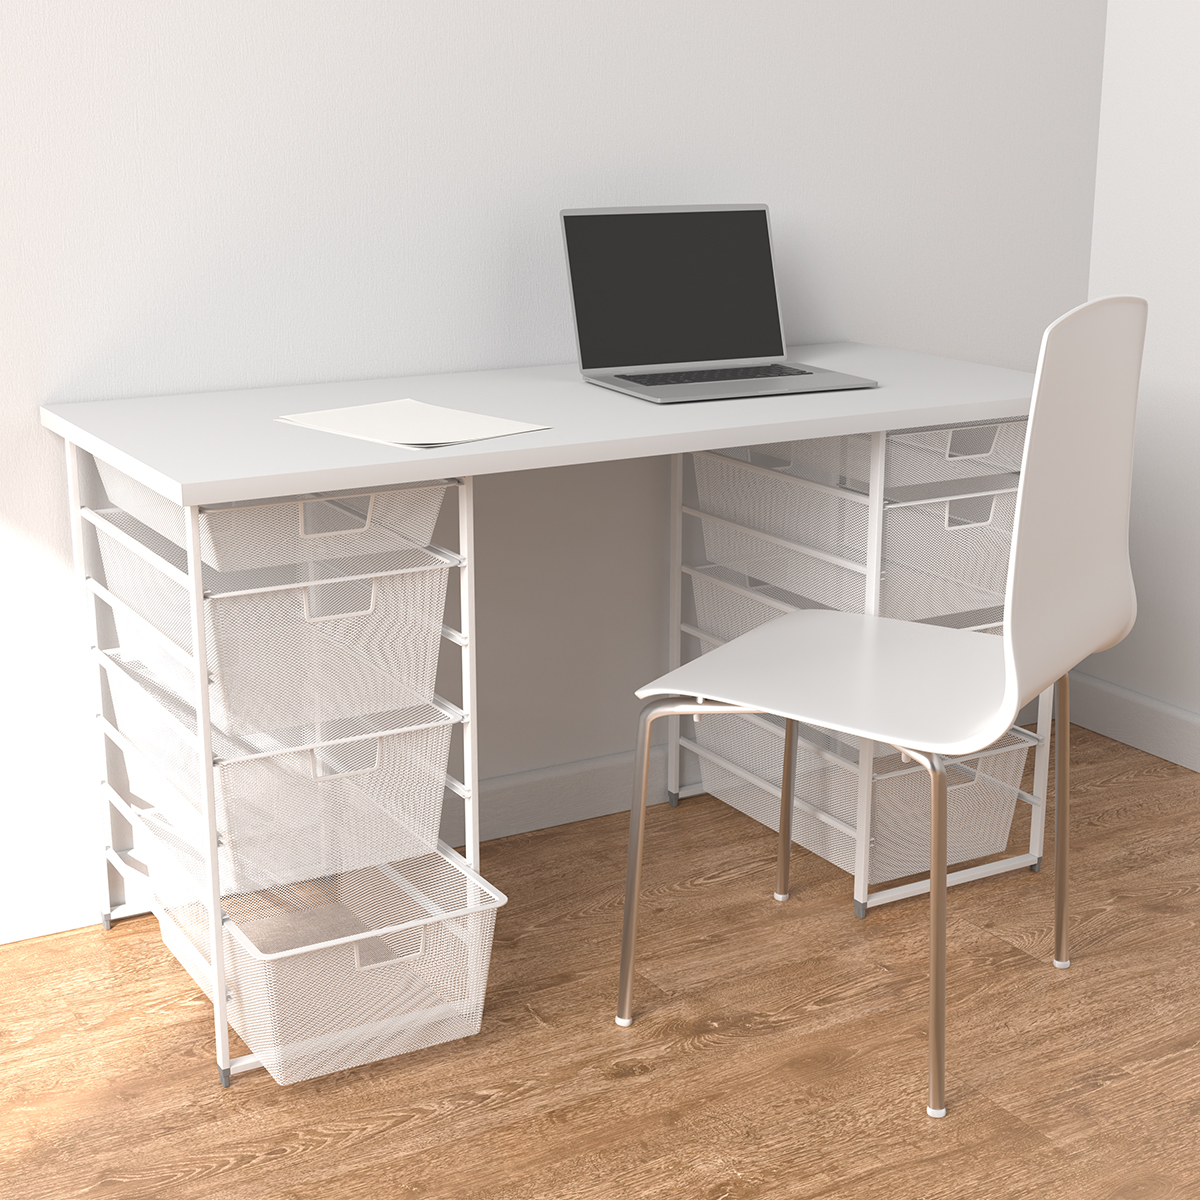 Elfa White Desk with Double Drawers